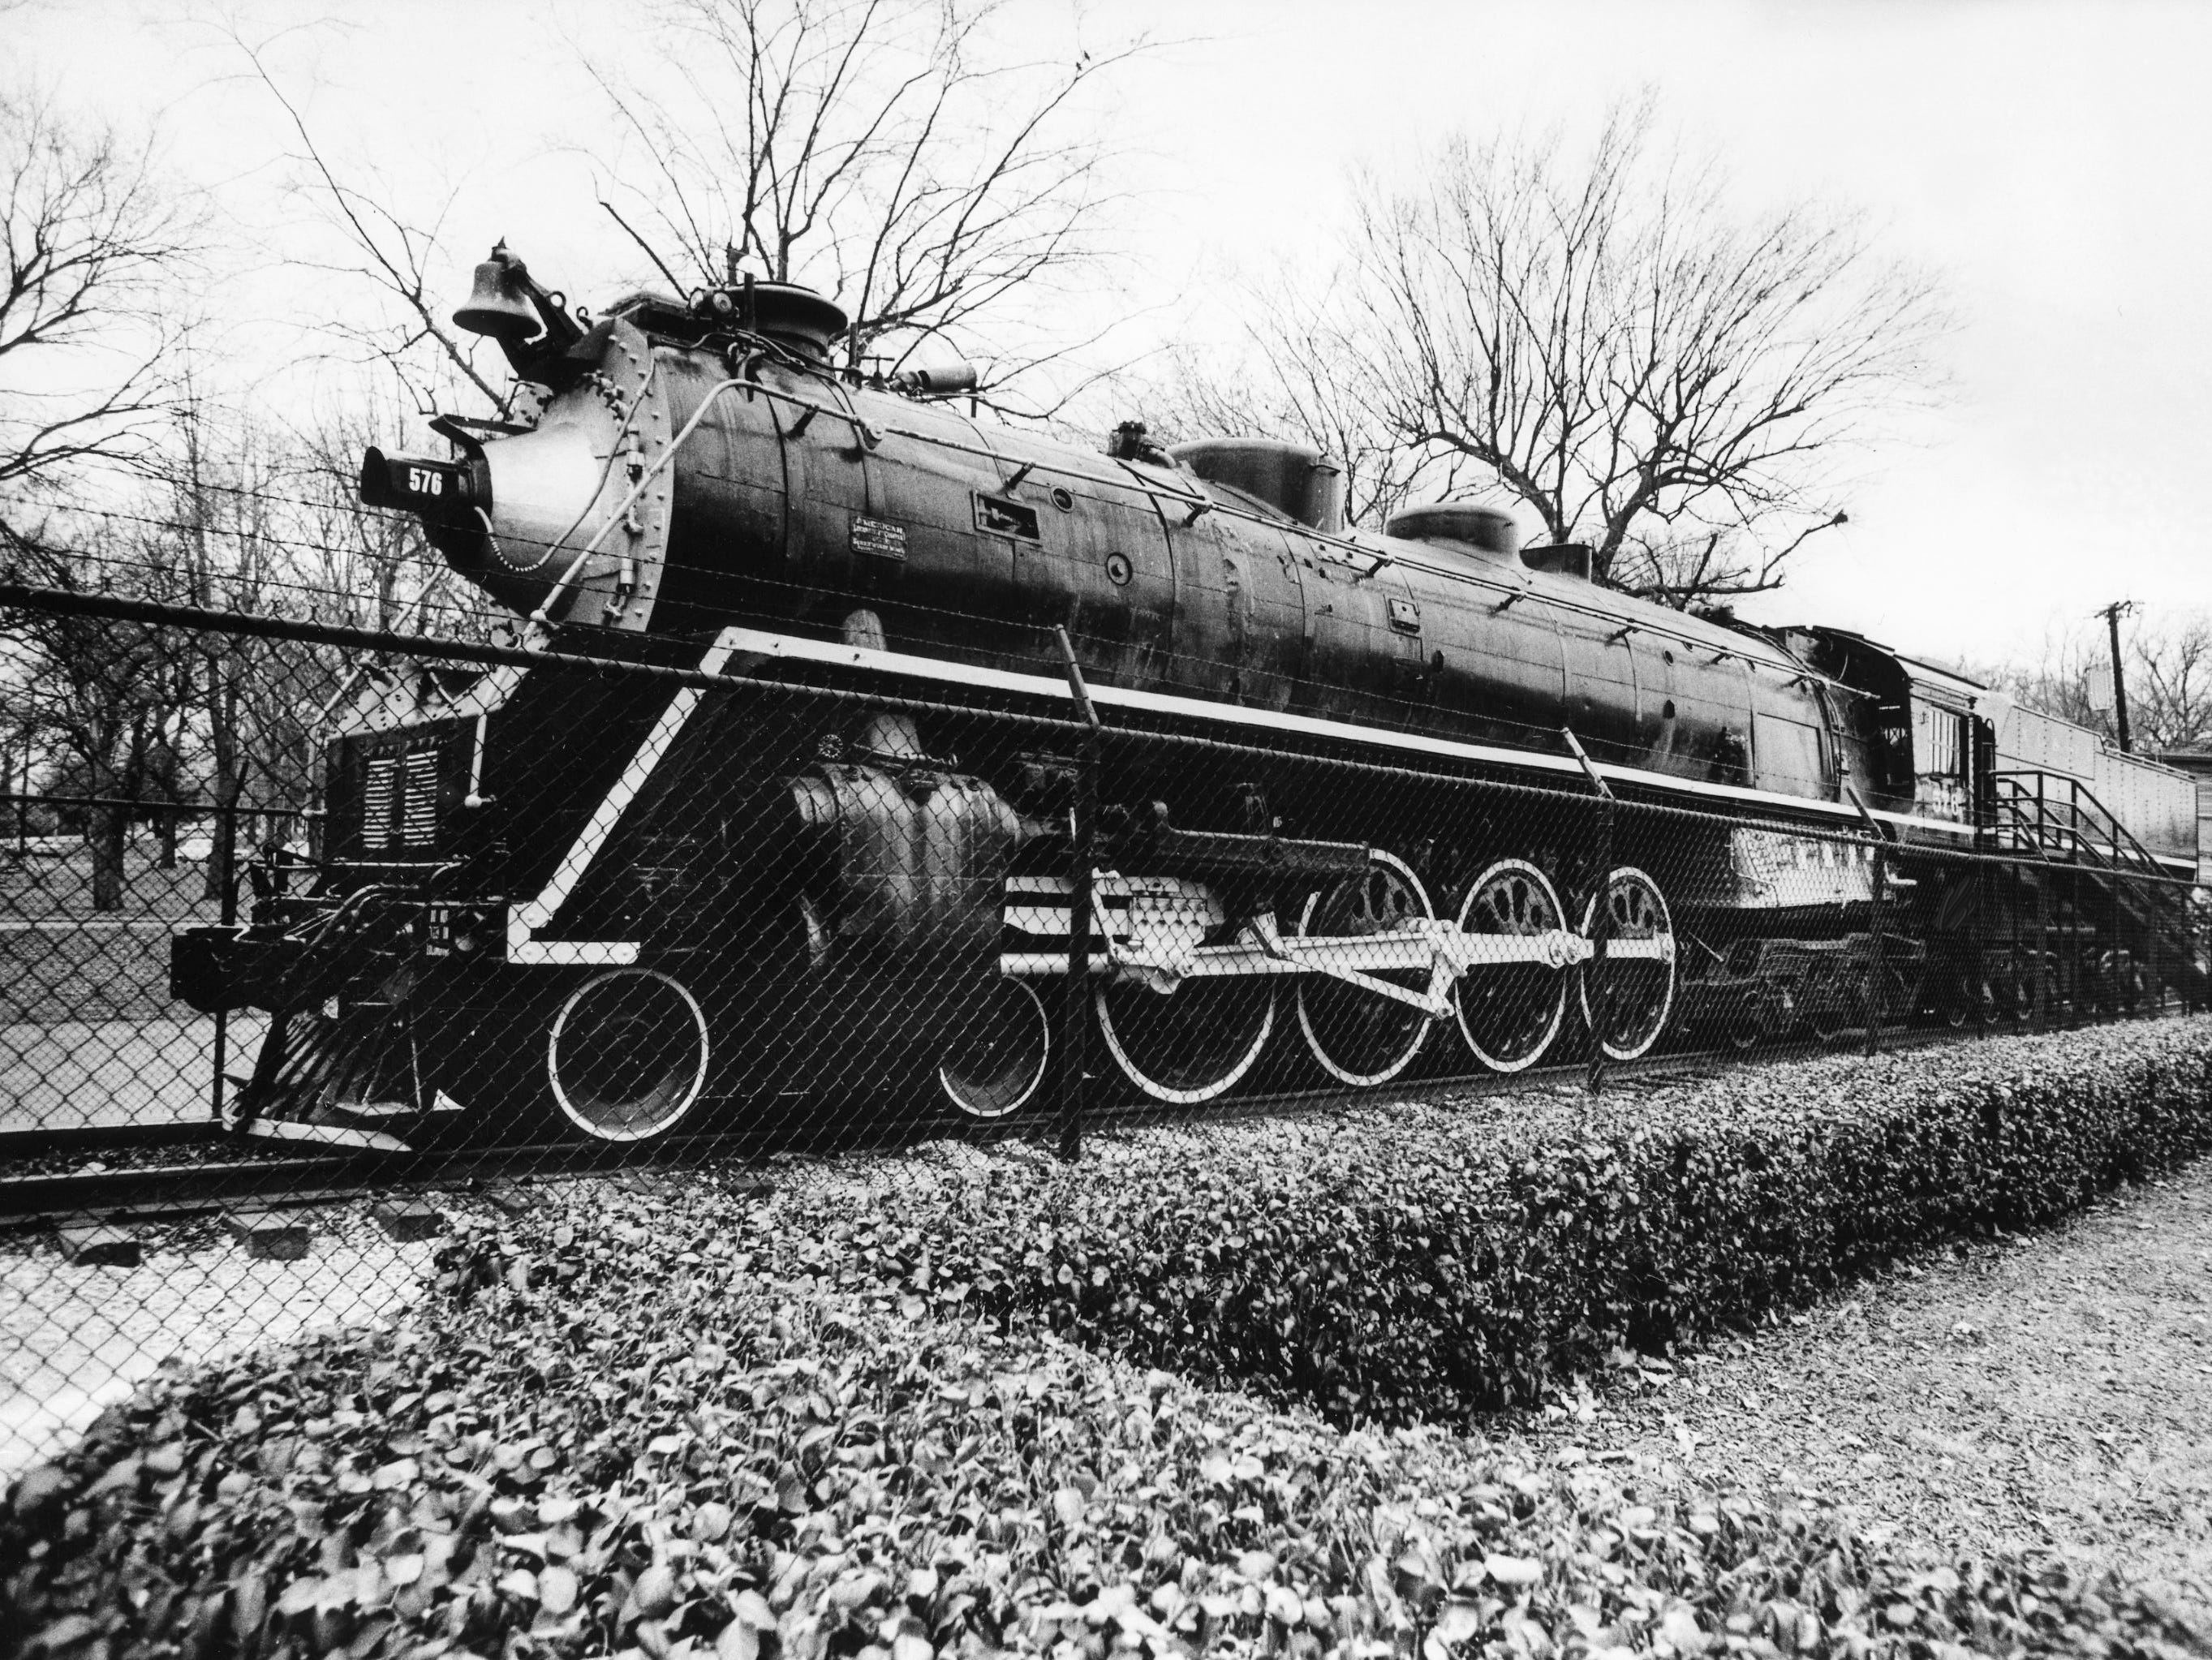 Steam locomotive No. 576, here Dec. 27, 1980, may no longer roll along the tracks, but it can still catch the interests of children, young and old, who come to see the sights of Centennial Park.